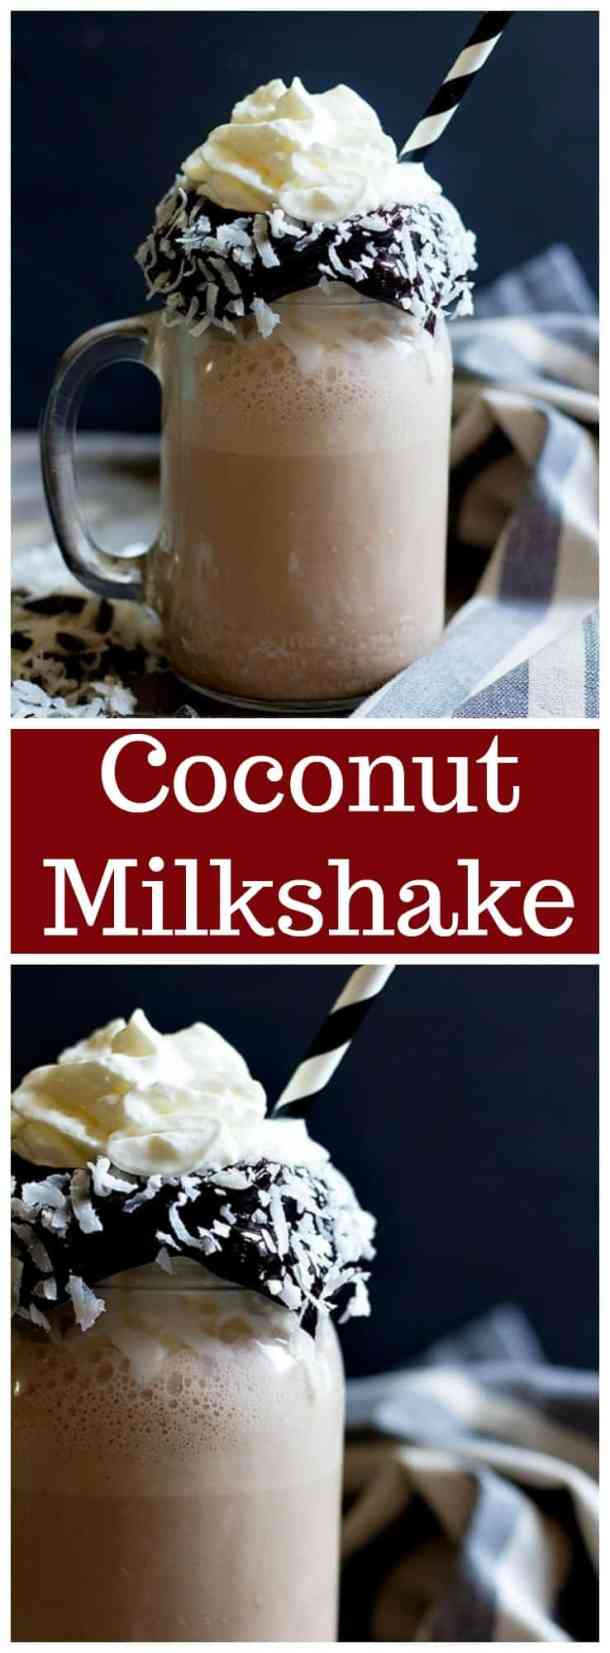 Coconut milkshake | coconut milkshake recipe | milkshake recipe | summer recipes | easy milkshake recipe | chocolate milkshake | coconut chocolate milkshake | #milkshake #milkshakerecipe #drinkrecipes #chocolatelovers #coconut